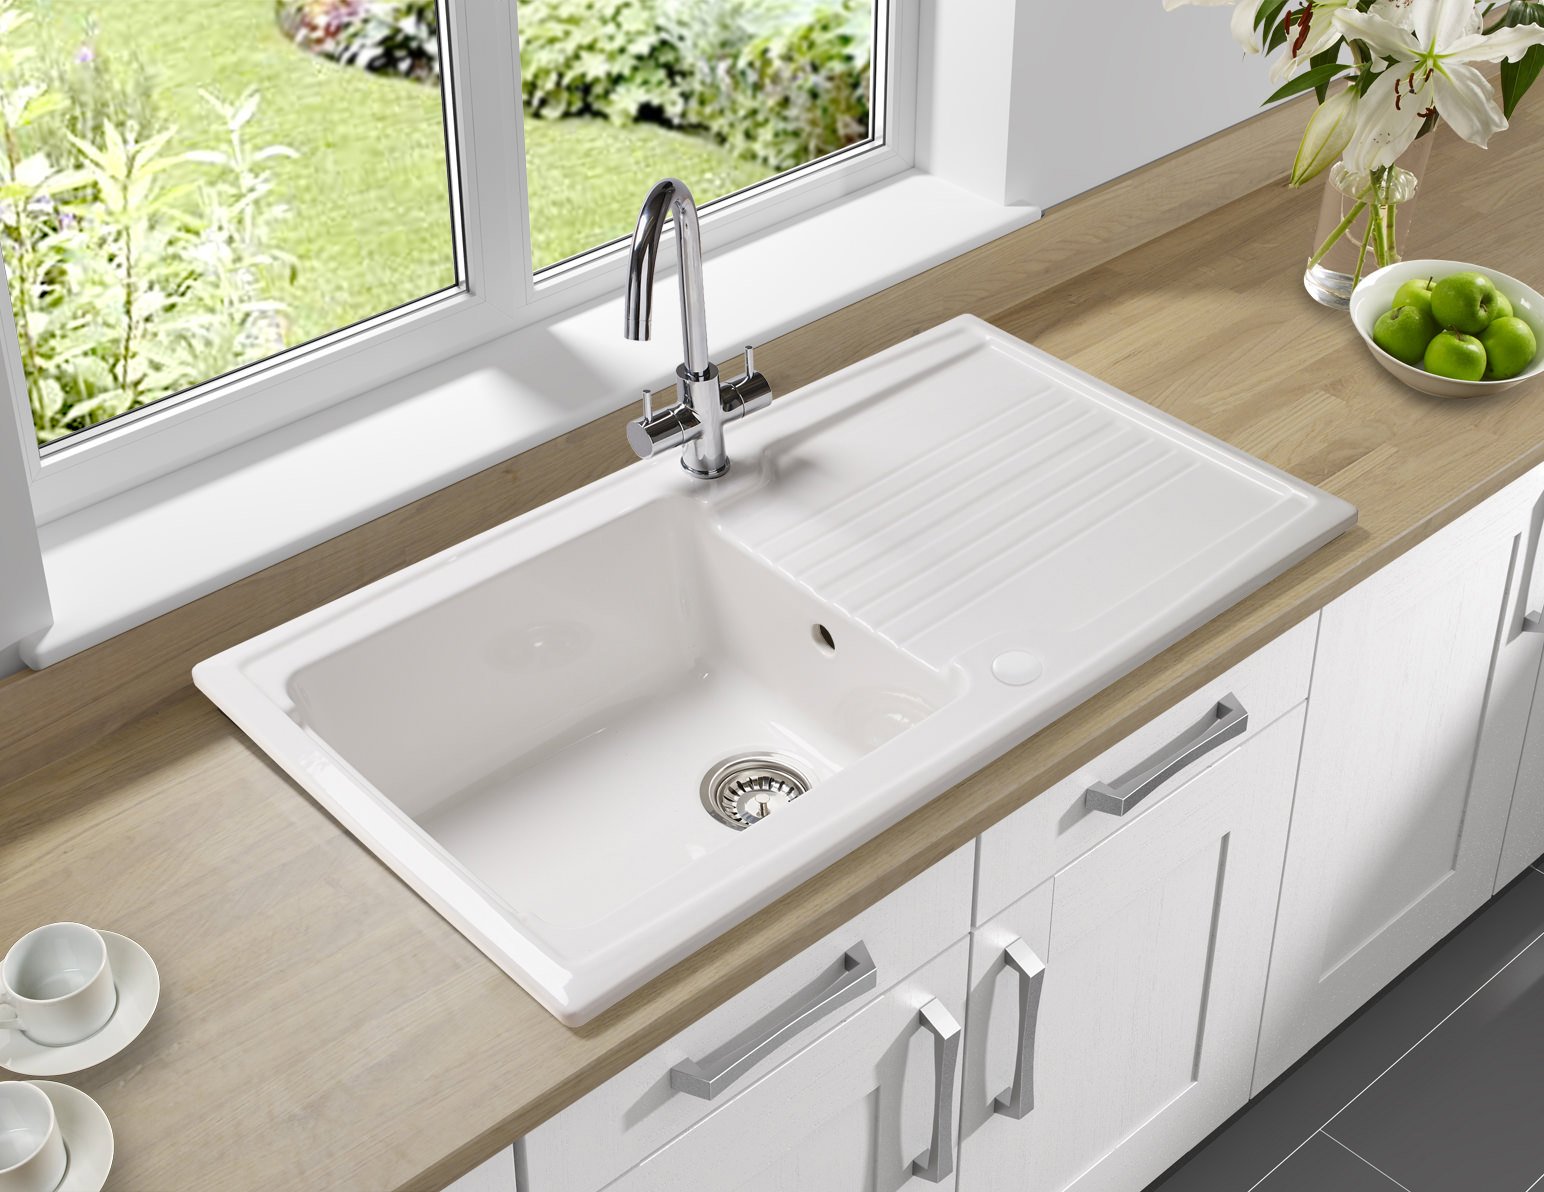 Astracast equinox 1 0 bowl ceramic inset kitchen sink - Undermount ceramic kitchen sink ...